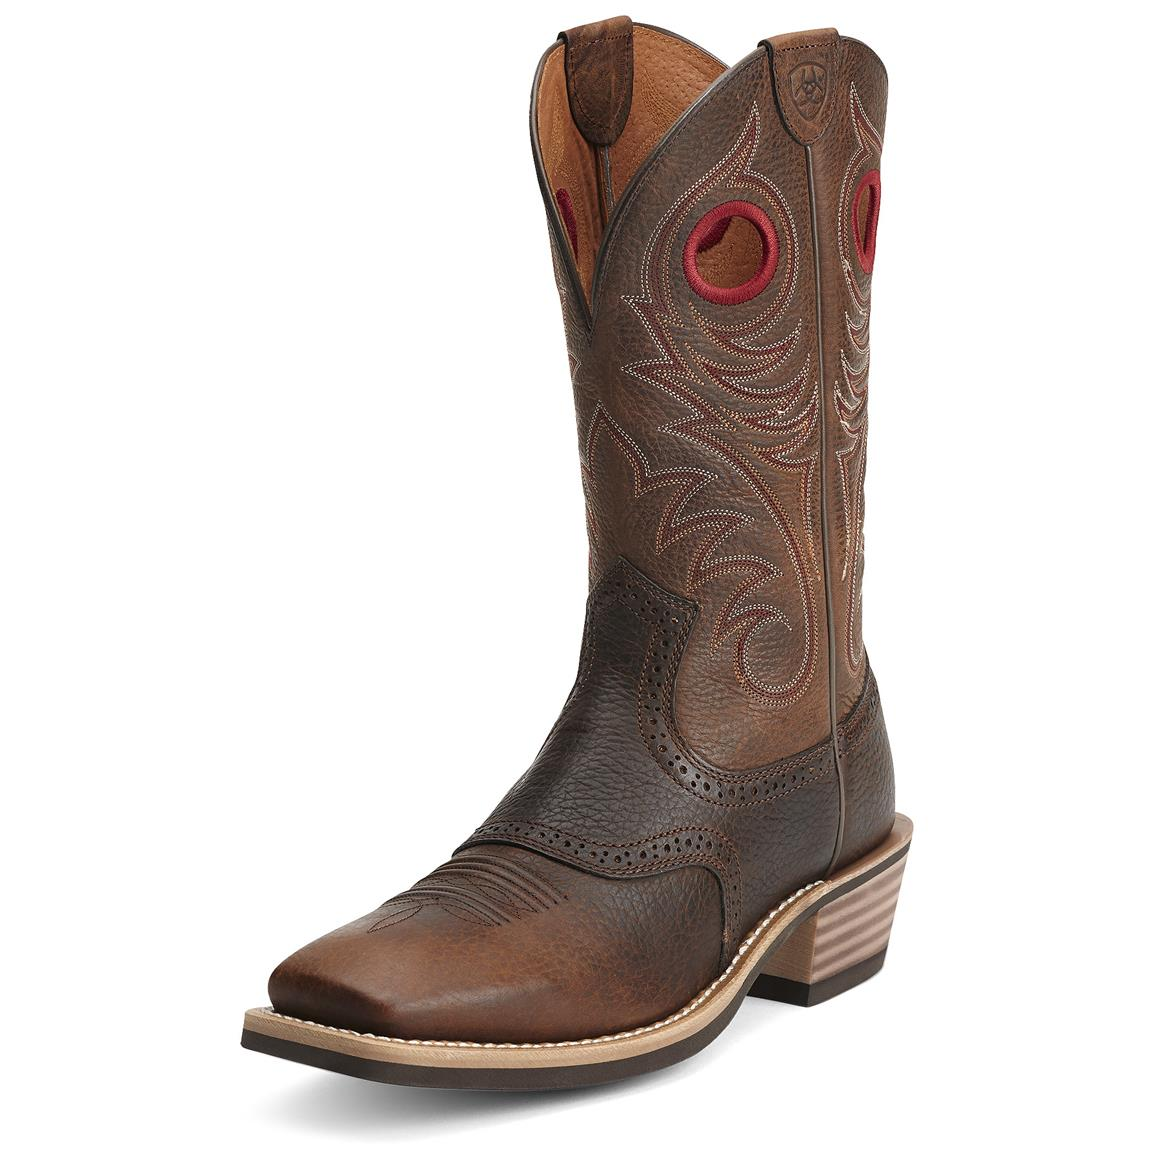 Ariat Heritage Roughstock Western Boots, Brown Oiled Rowdy